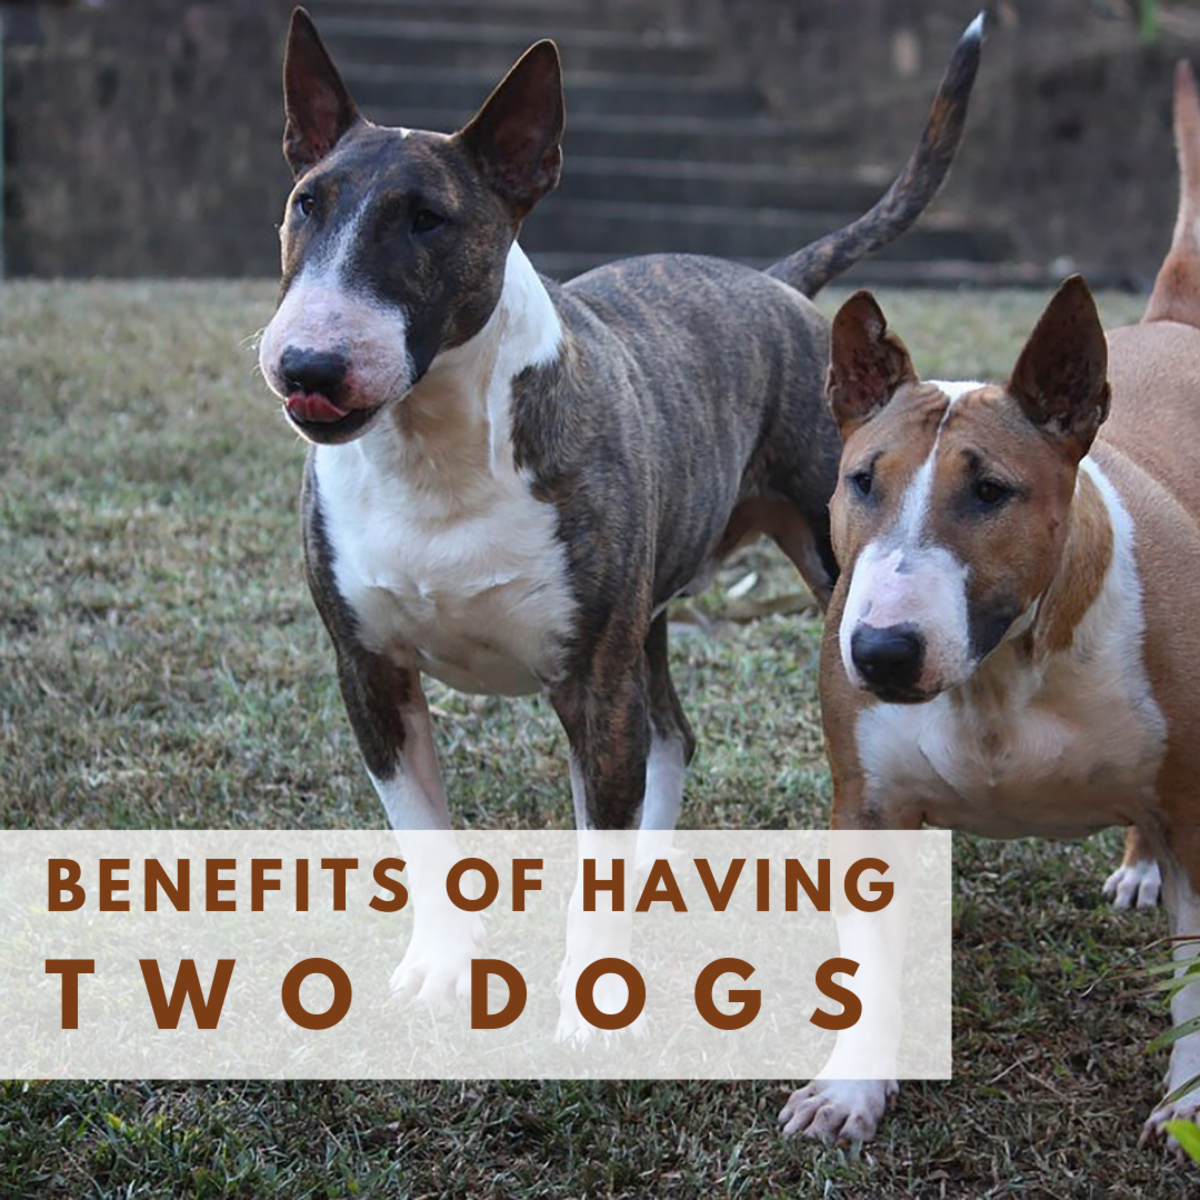 There are many benefits to having two dogs instead of just one.